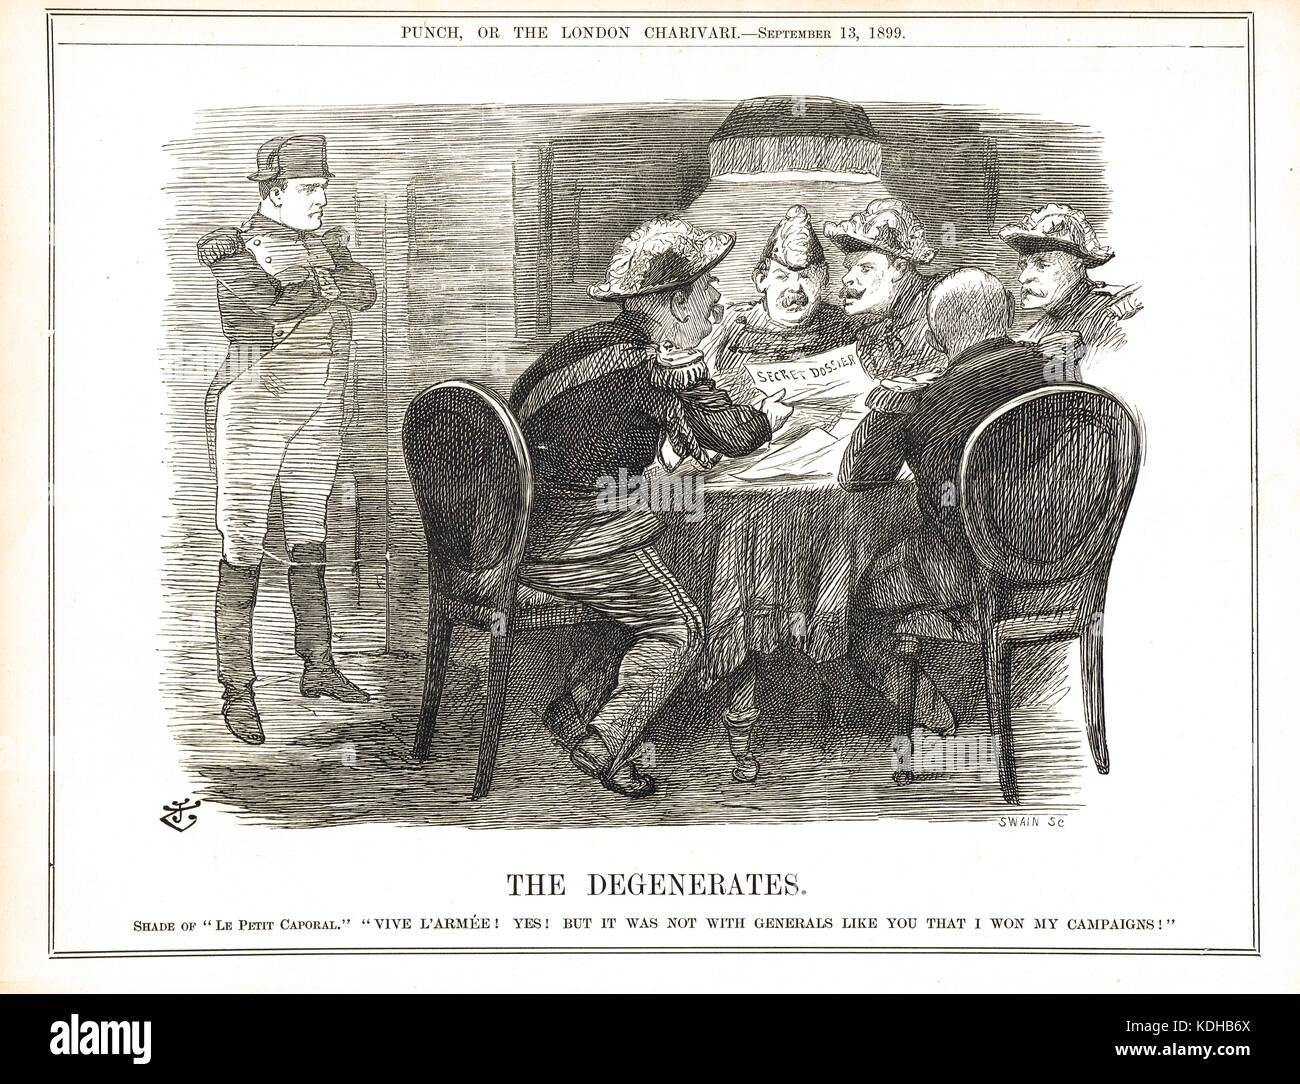 The Dreyfuss Secret Dossier revealed, 1899.  The Ghost of Napoleon looking at the French generals with contempt. - Stock Image